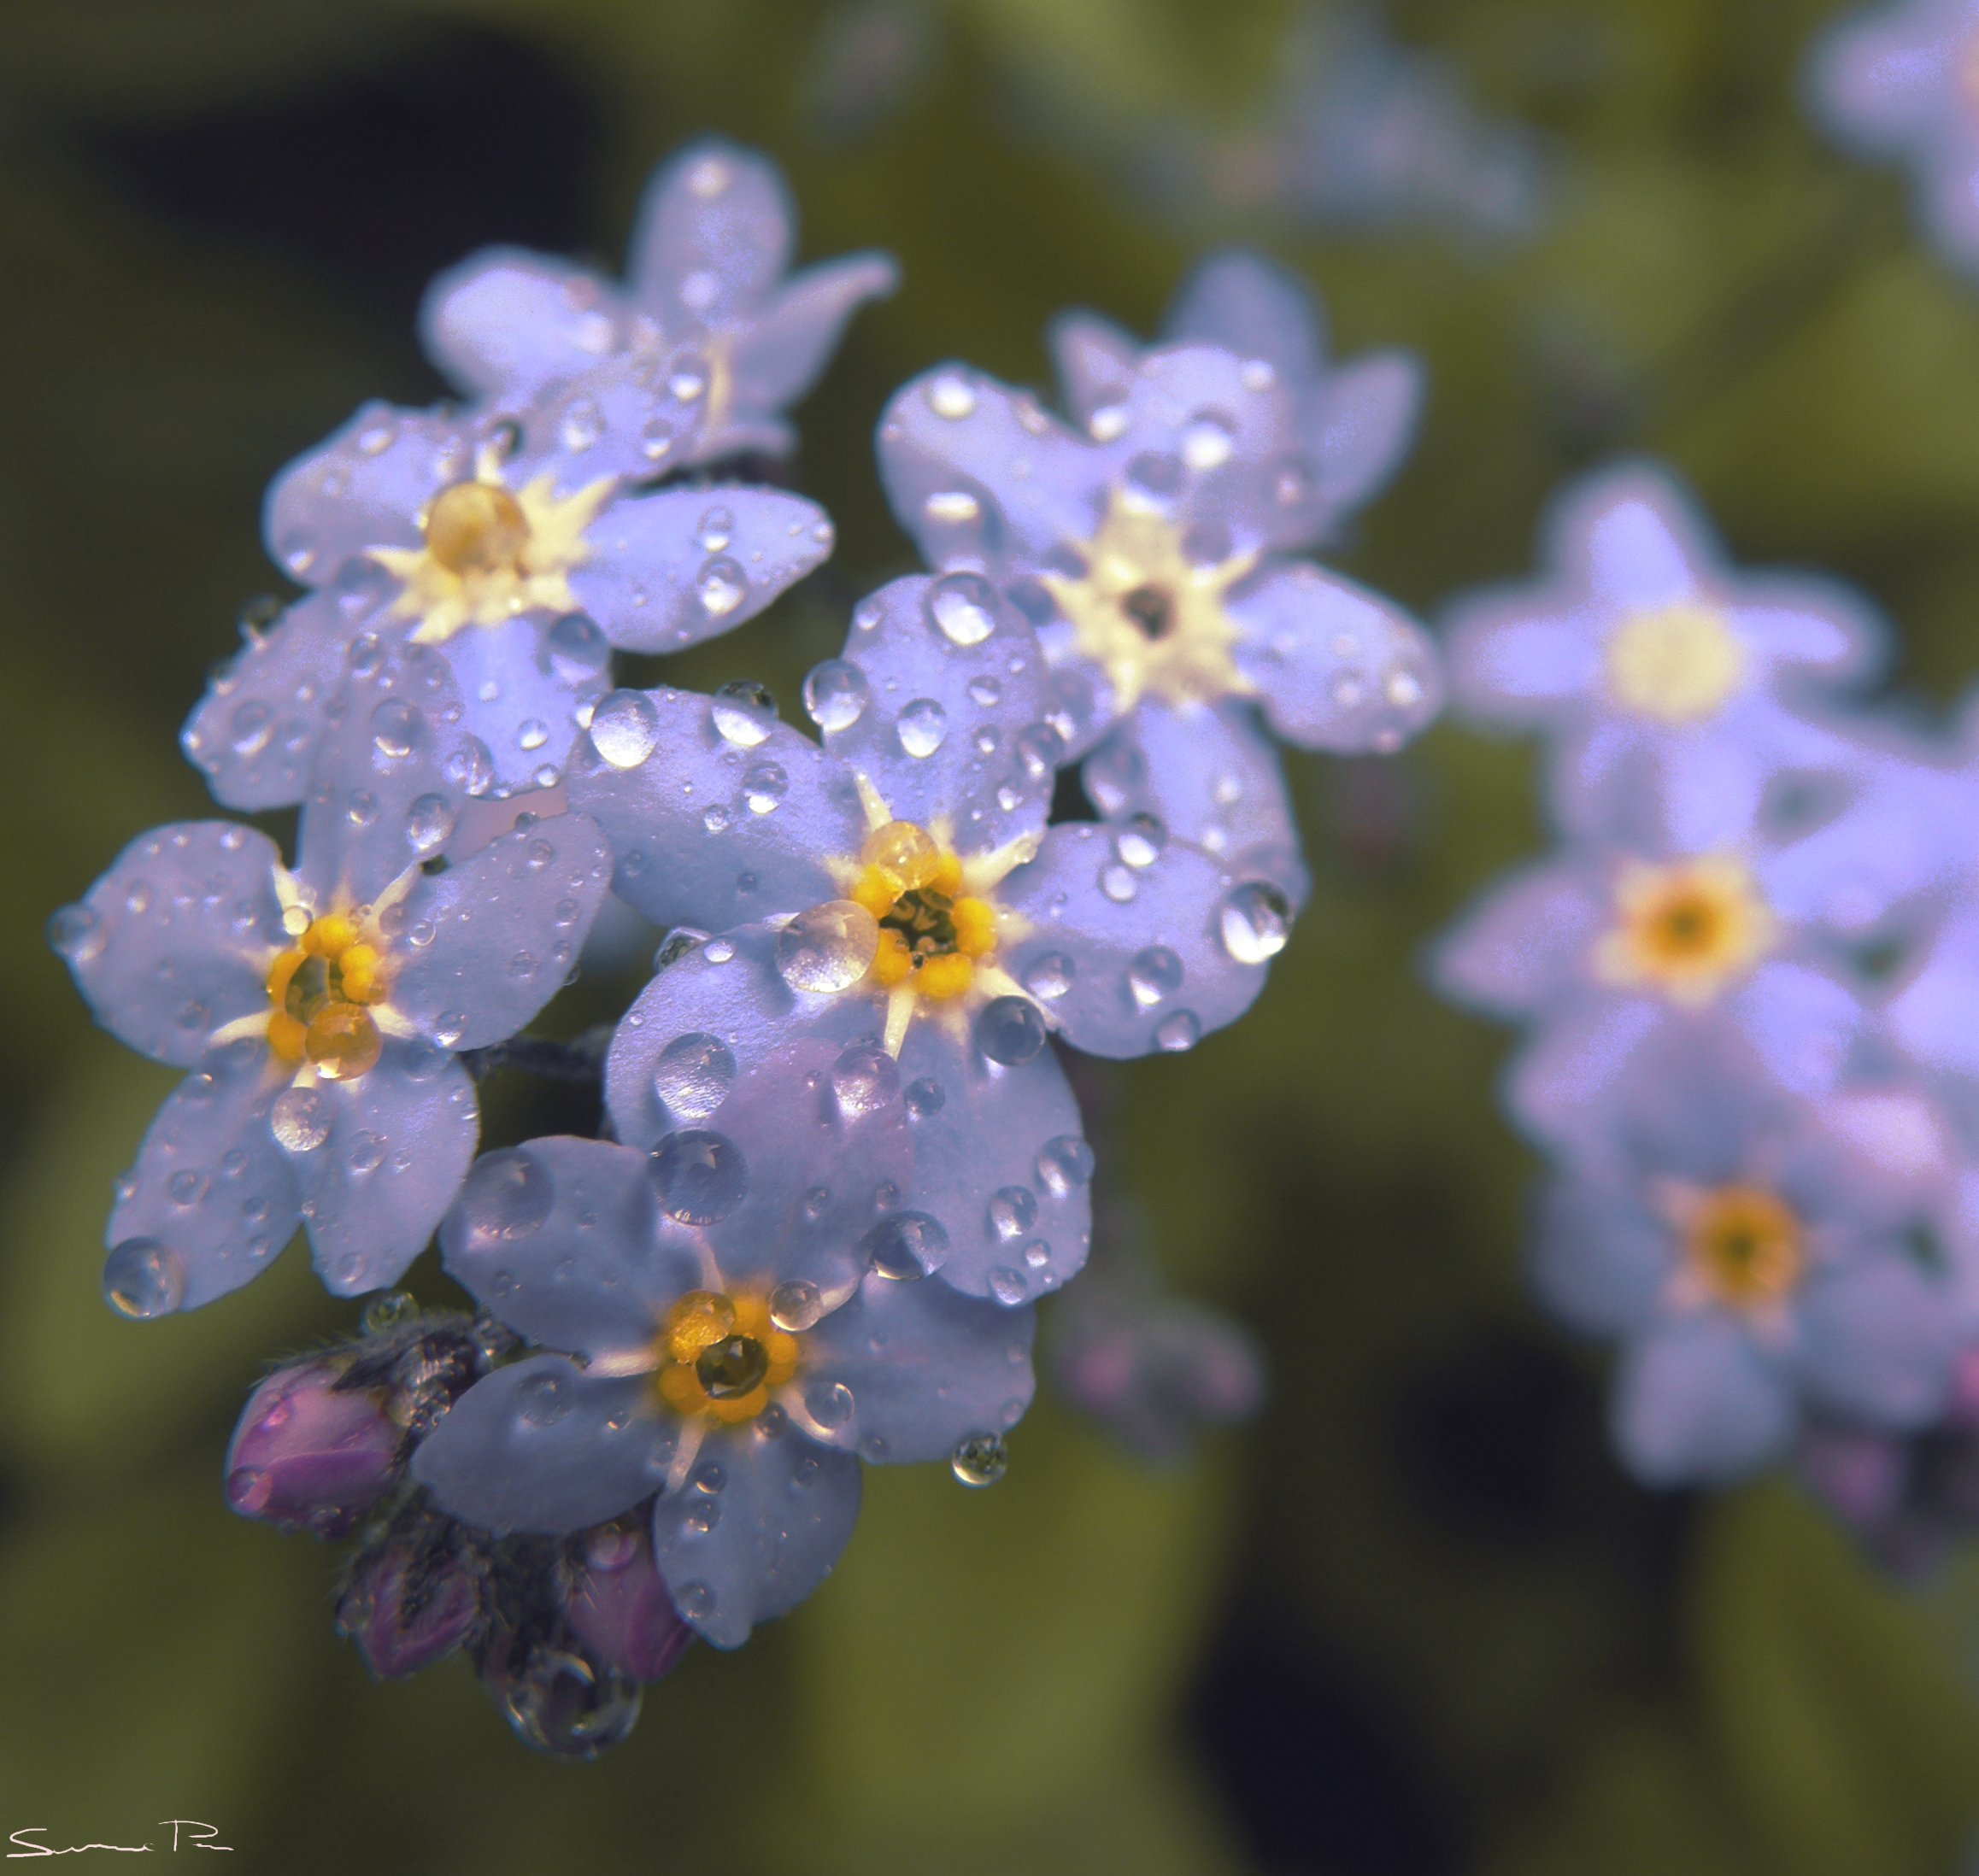 Rainy Day Wallpaper: Spring Rain Wallpaper For Desktop